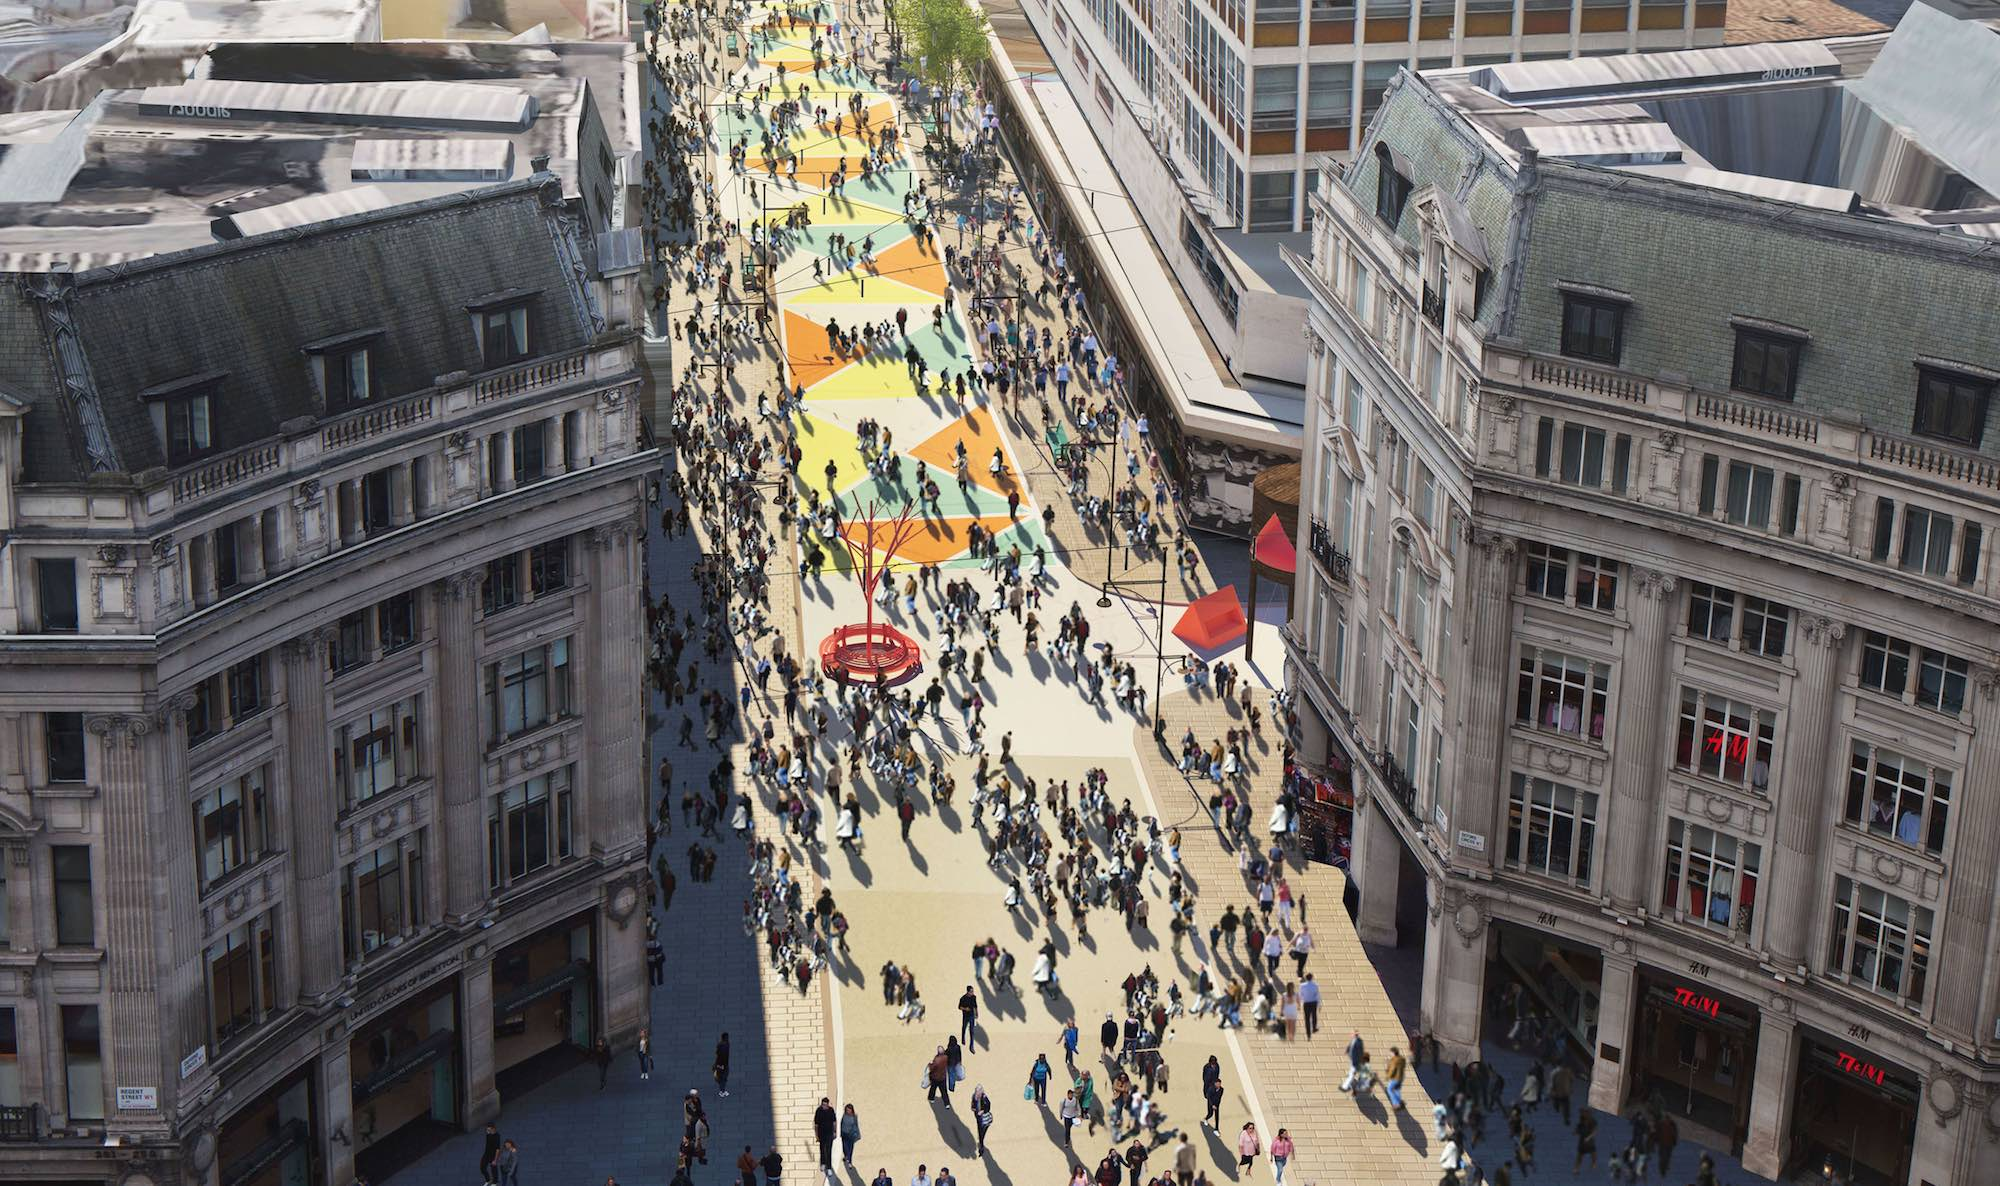 Oxford Street to be pedestrianised by the end of 2018